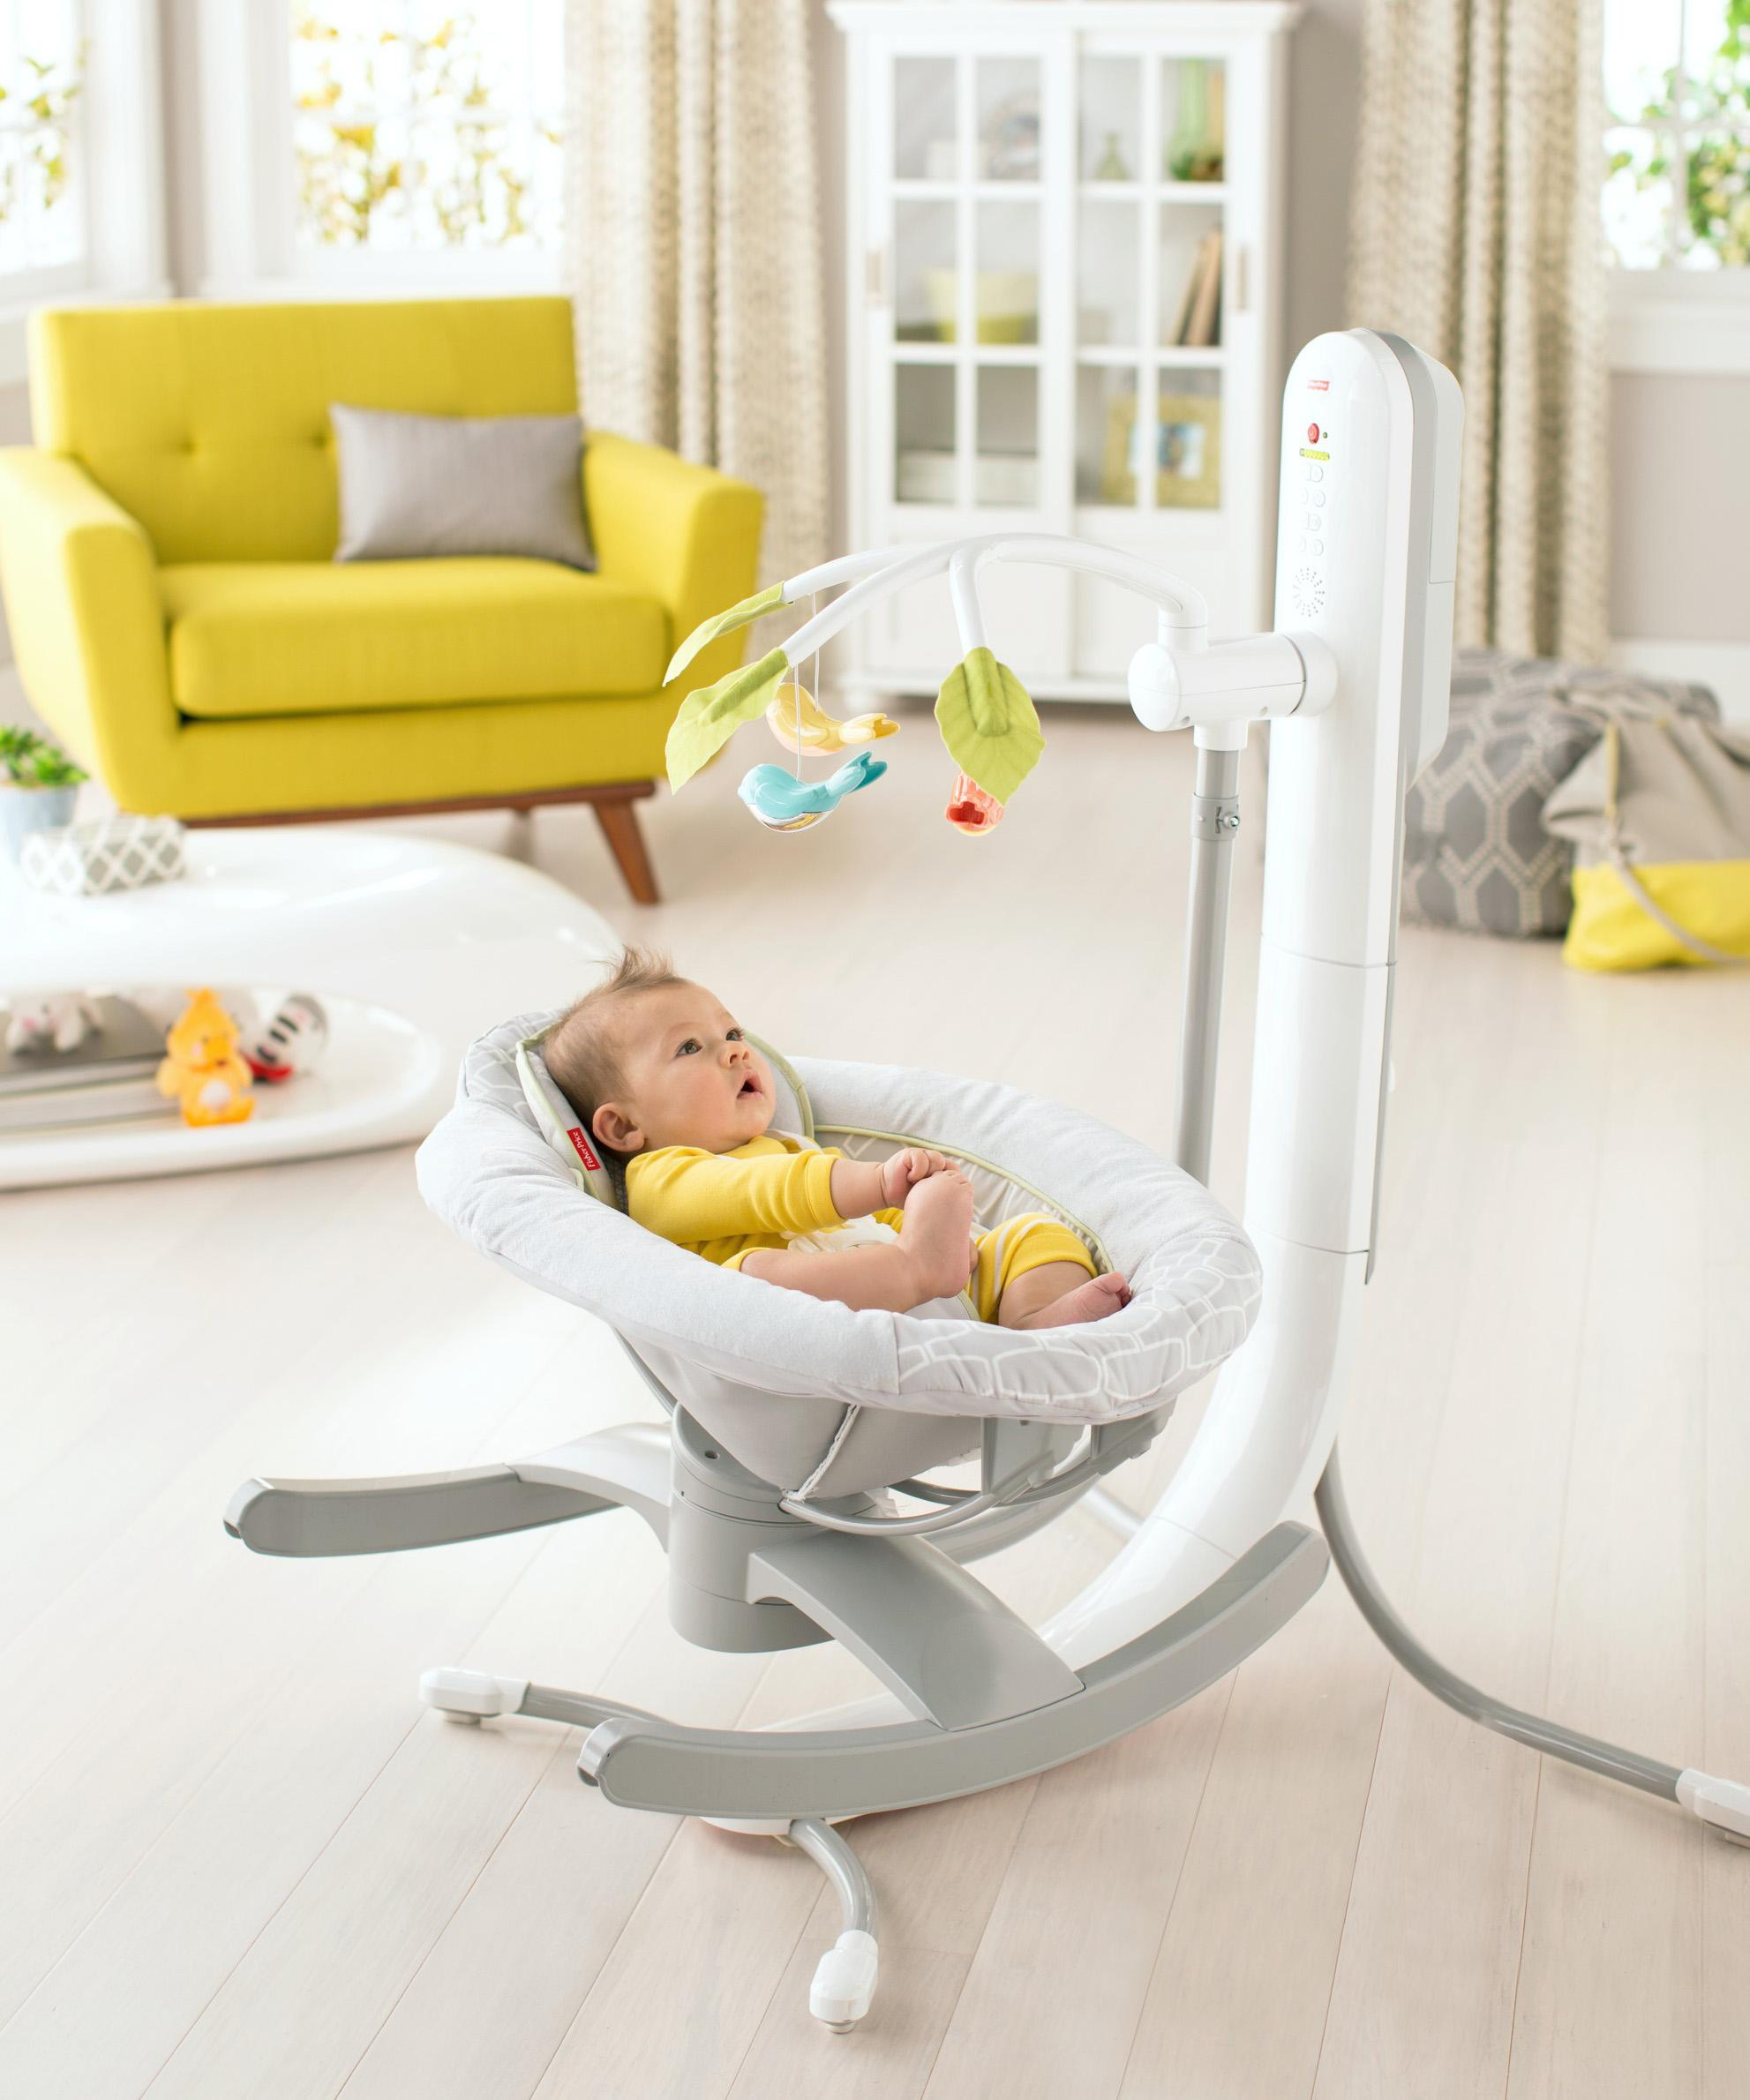 Amazon Com Fisher Price 4 In 1 Smart Connect Cradle N